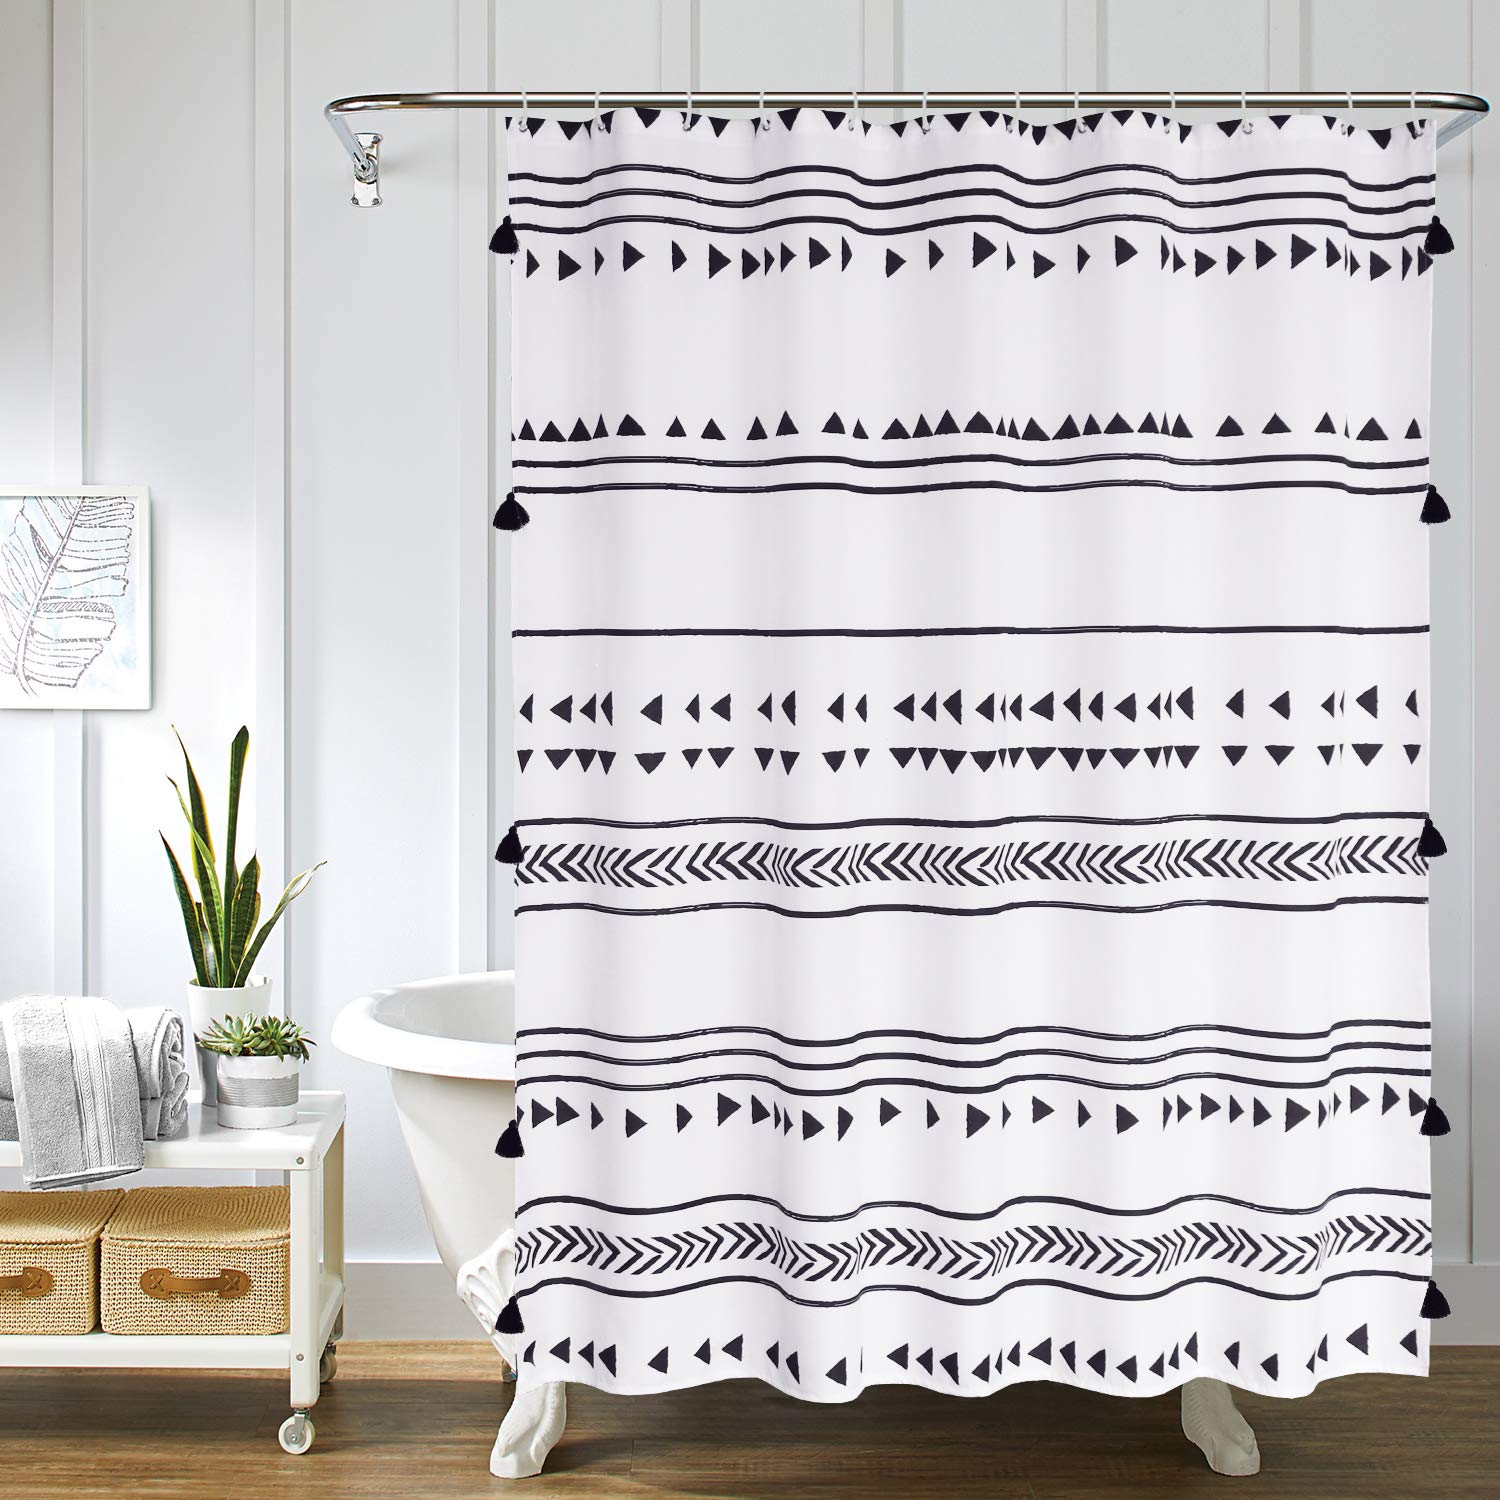 Uphome Fabric Boho Shower Curtain Black And White African Triangle Stripes Geometric Tassel Shower Curtain Set With Hooks Chic Tribal Bathroom Decor Accessories Heavy Duty And Waterproof 72x72 Buy Online In Pakistan